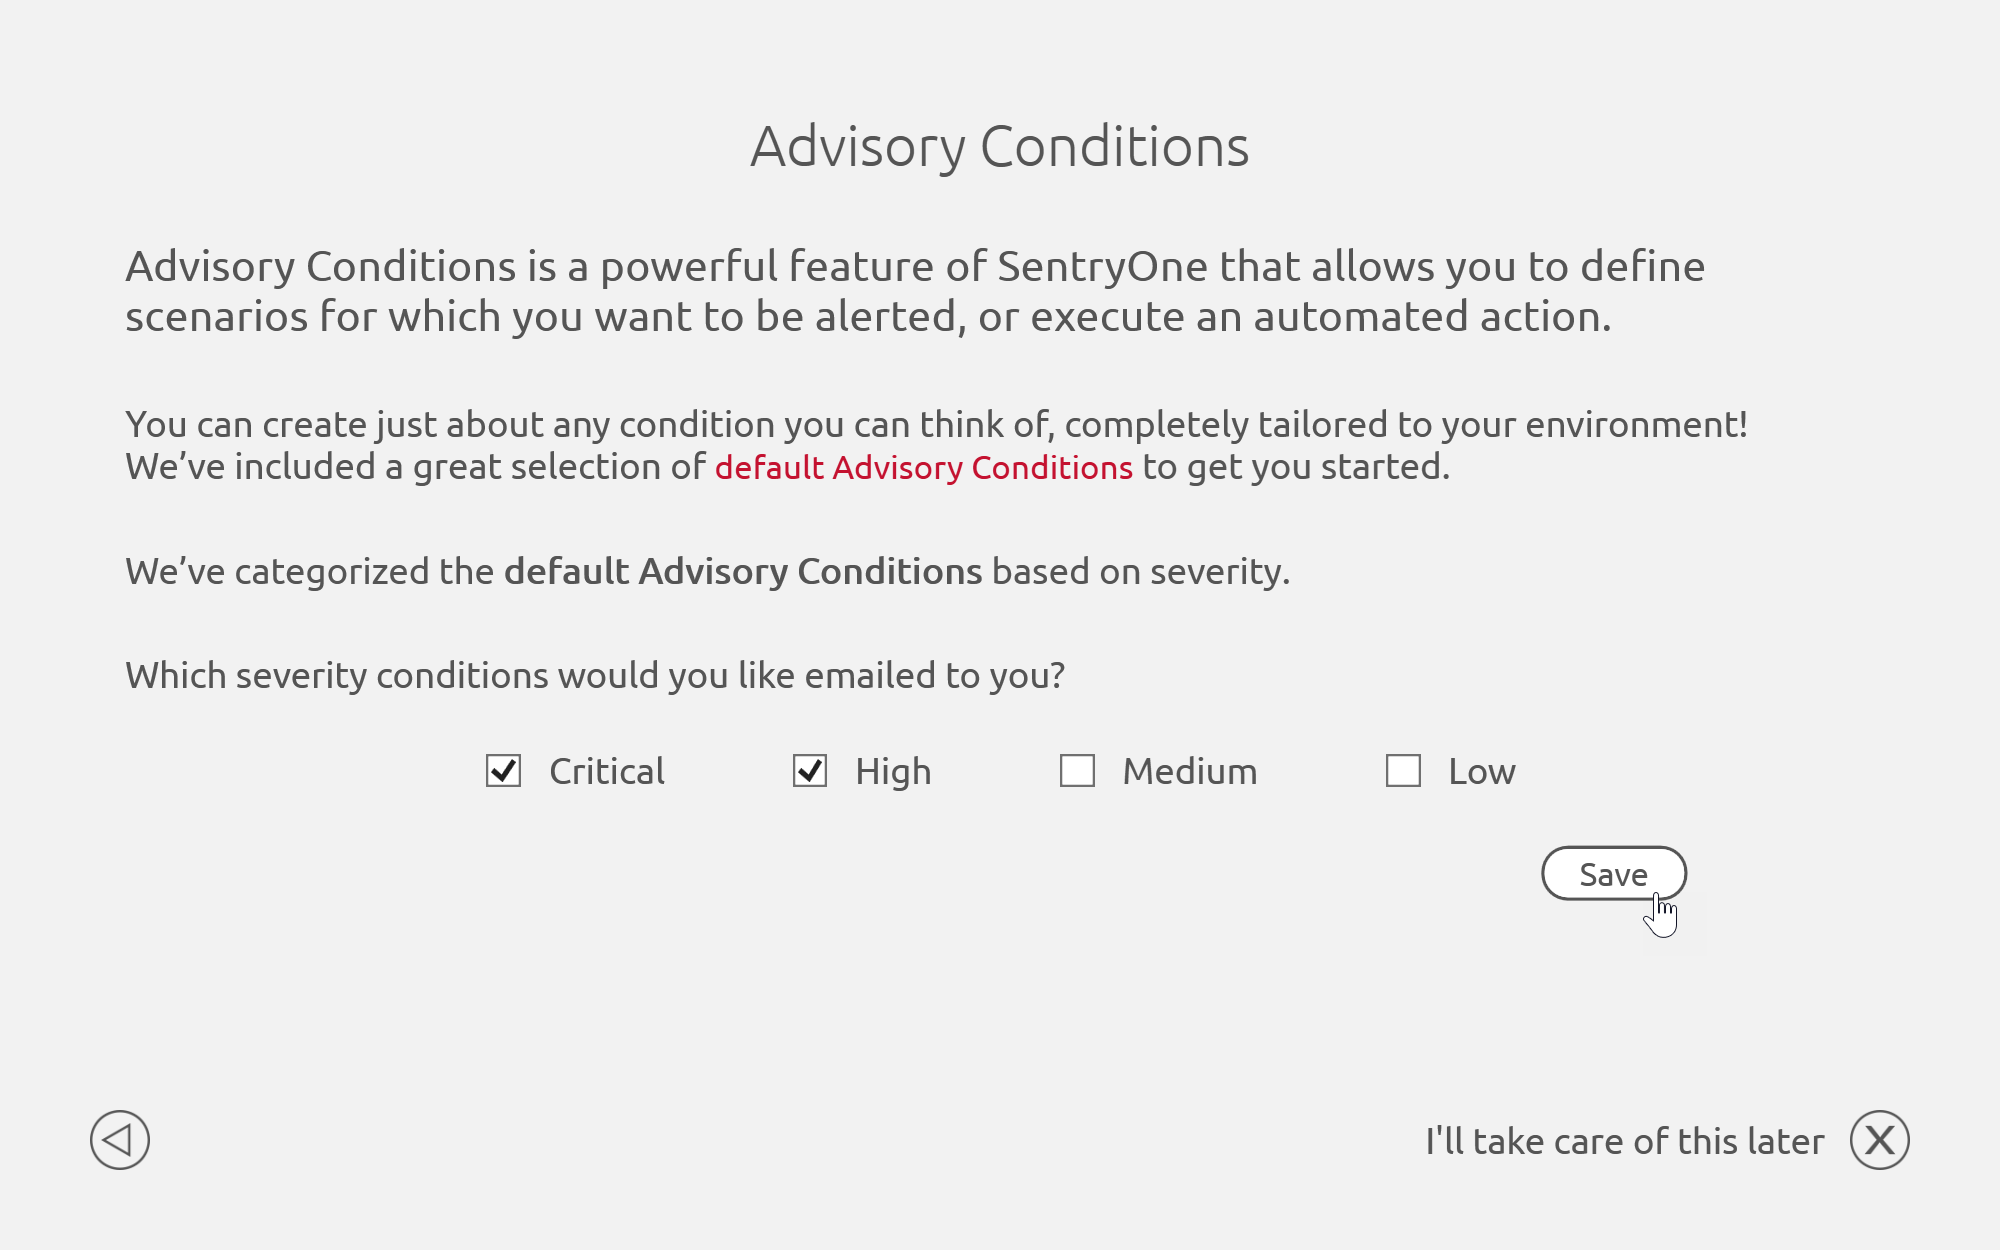 SentryOne On-boarding Advisory Conditions